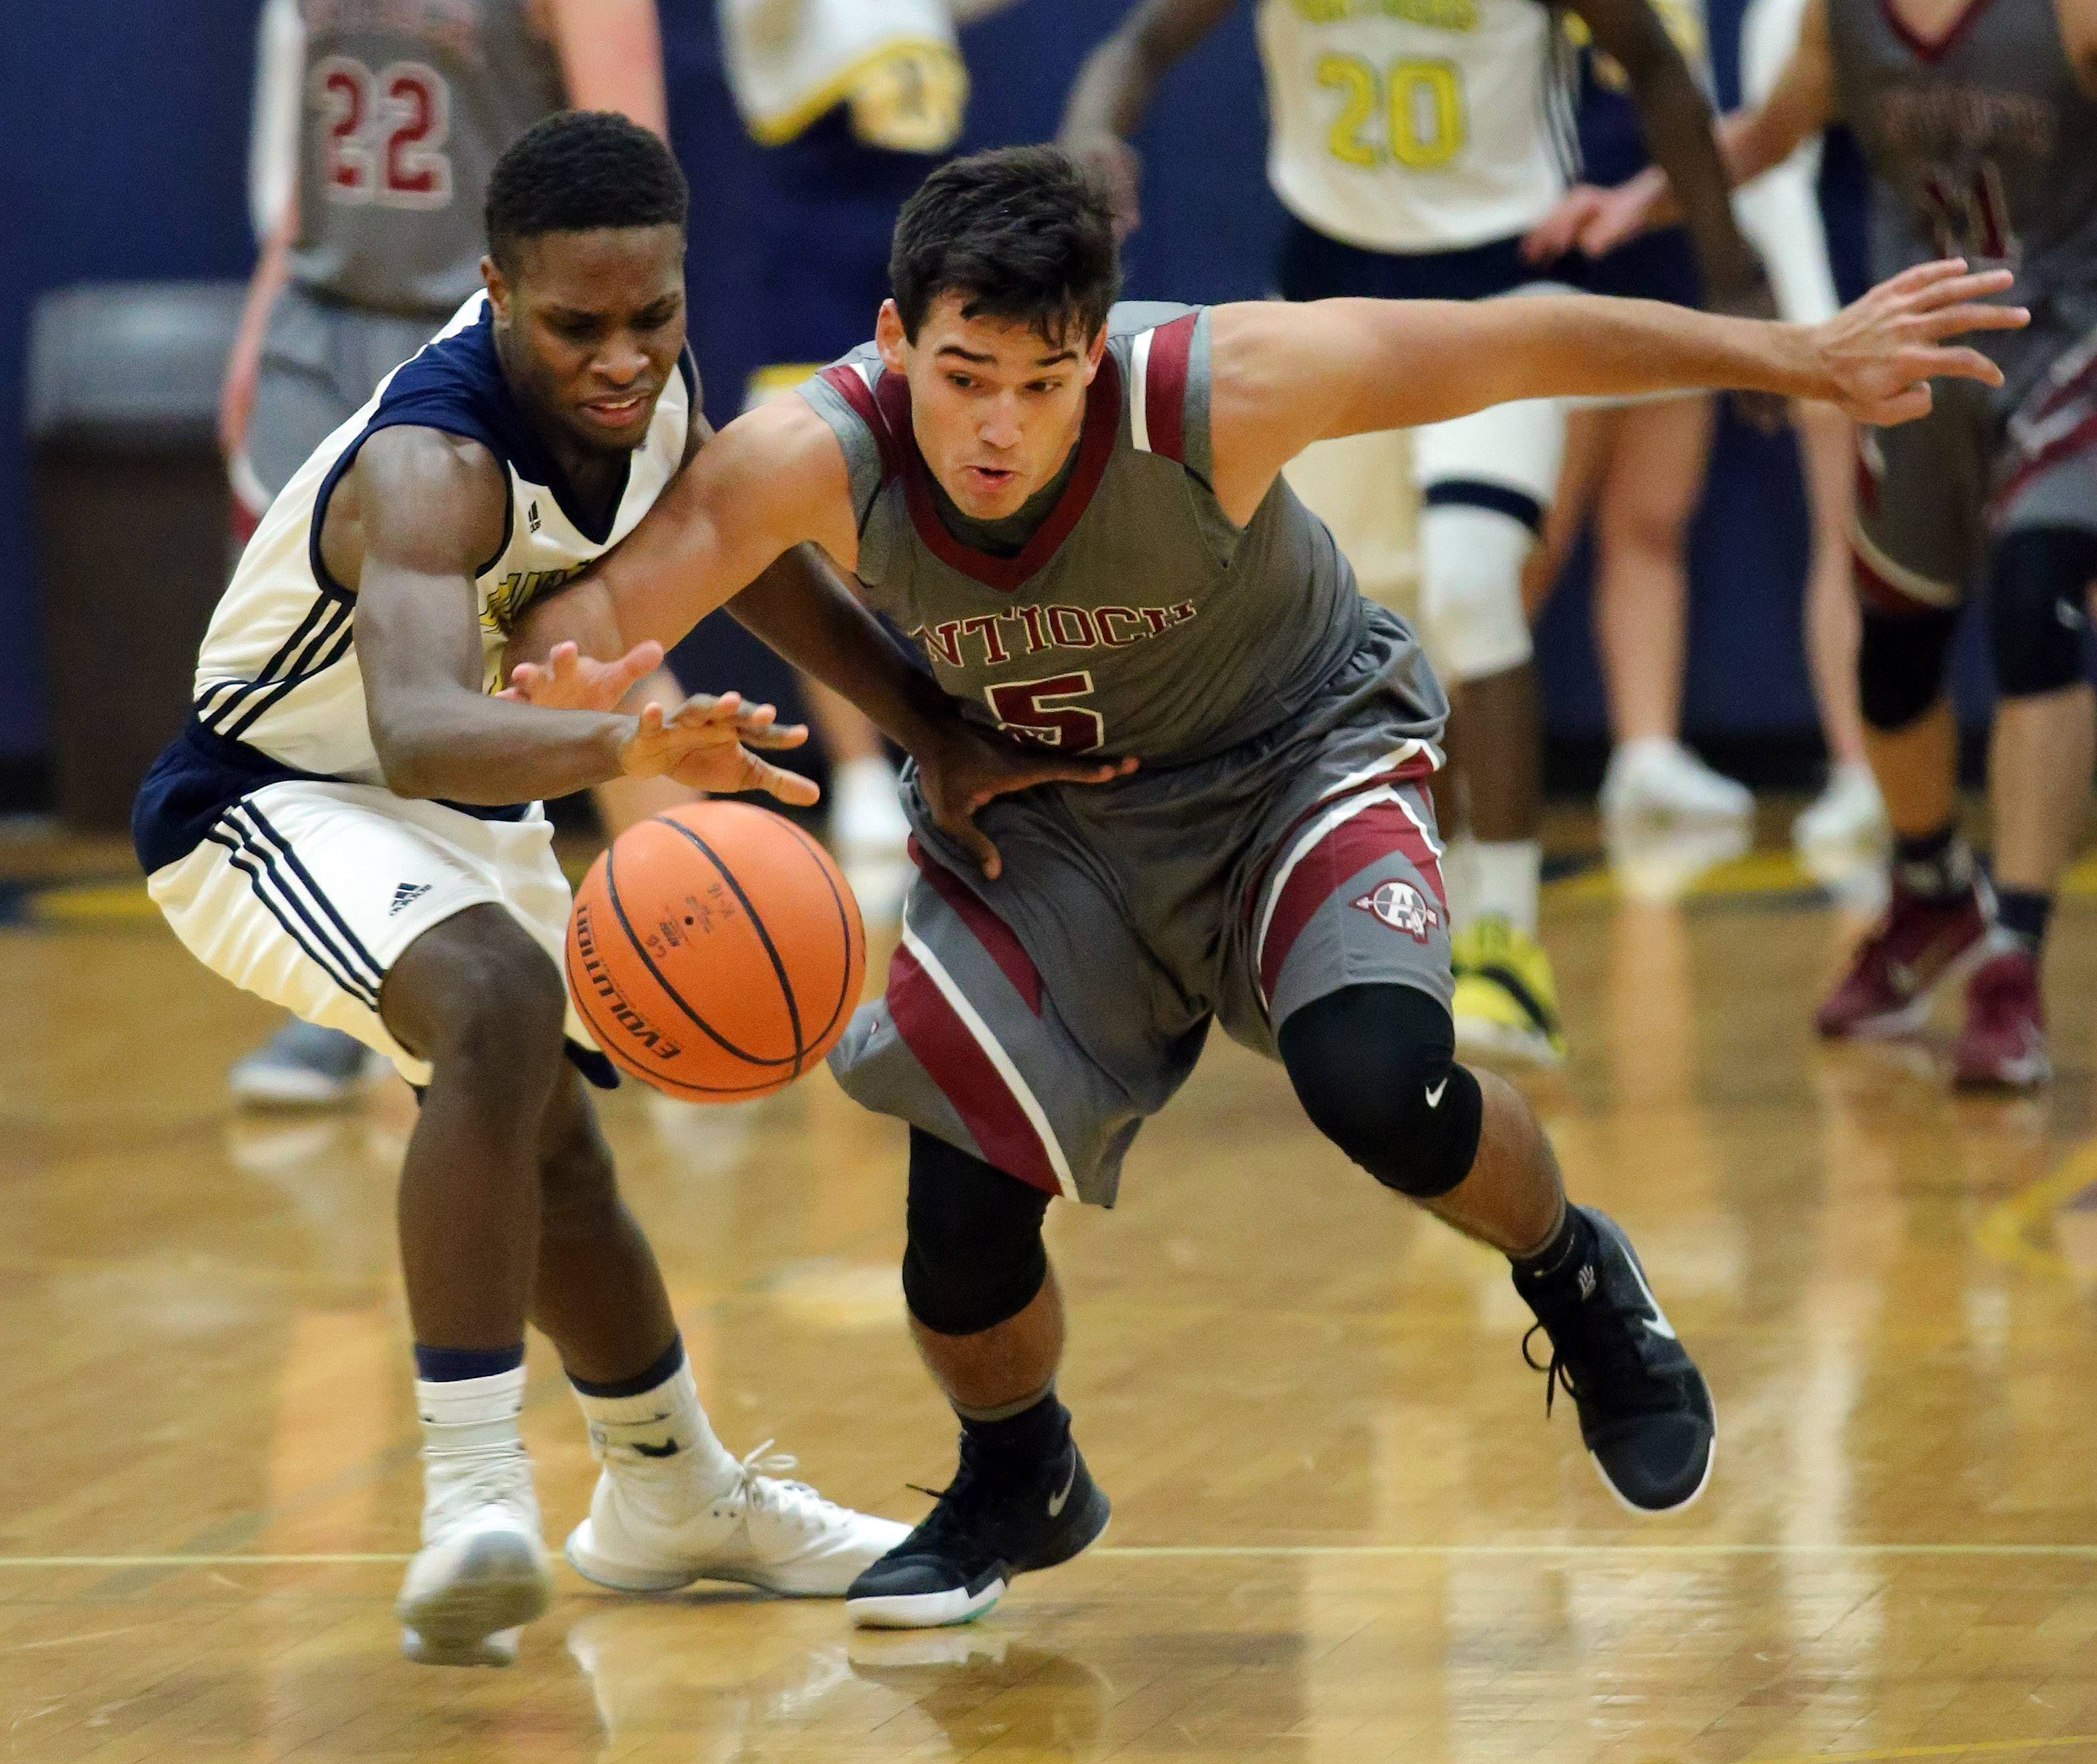 Antioch's Michael Kawell, right, and Round Lake's Angelo White battle for a loose ball during their game Wednesday night in Round Lake.